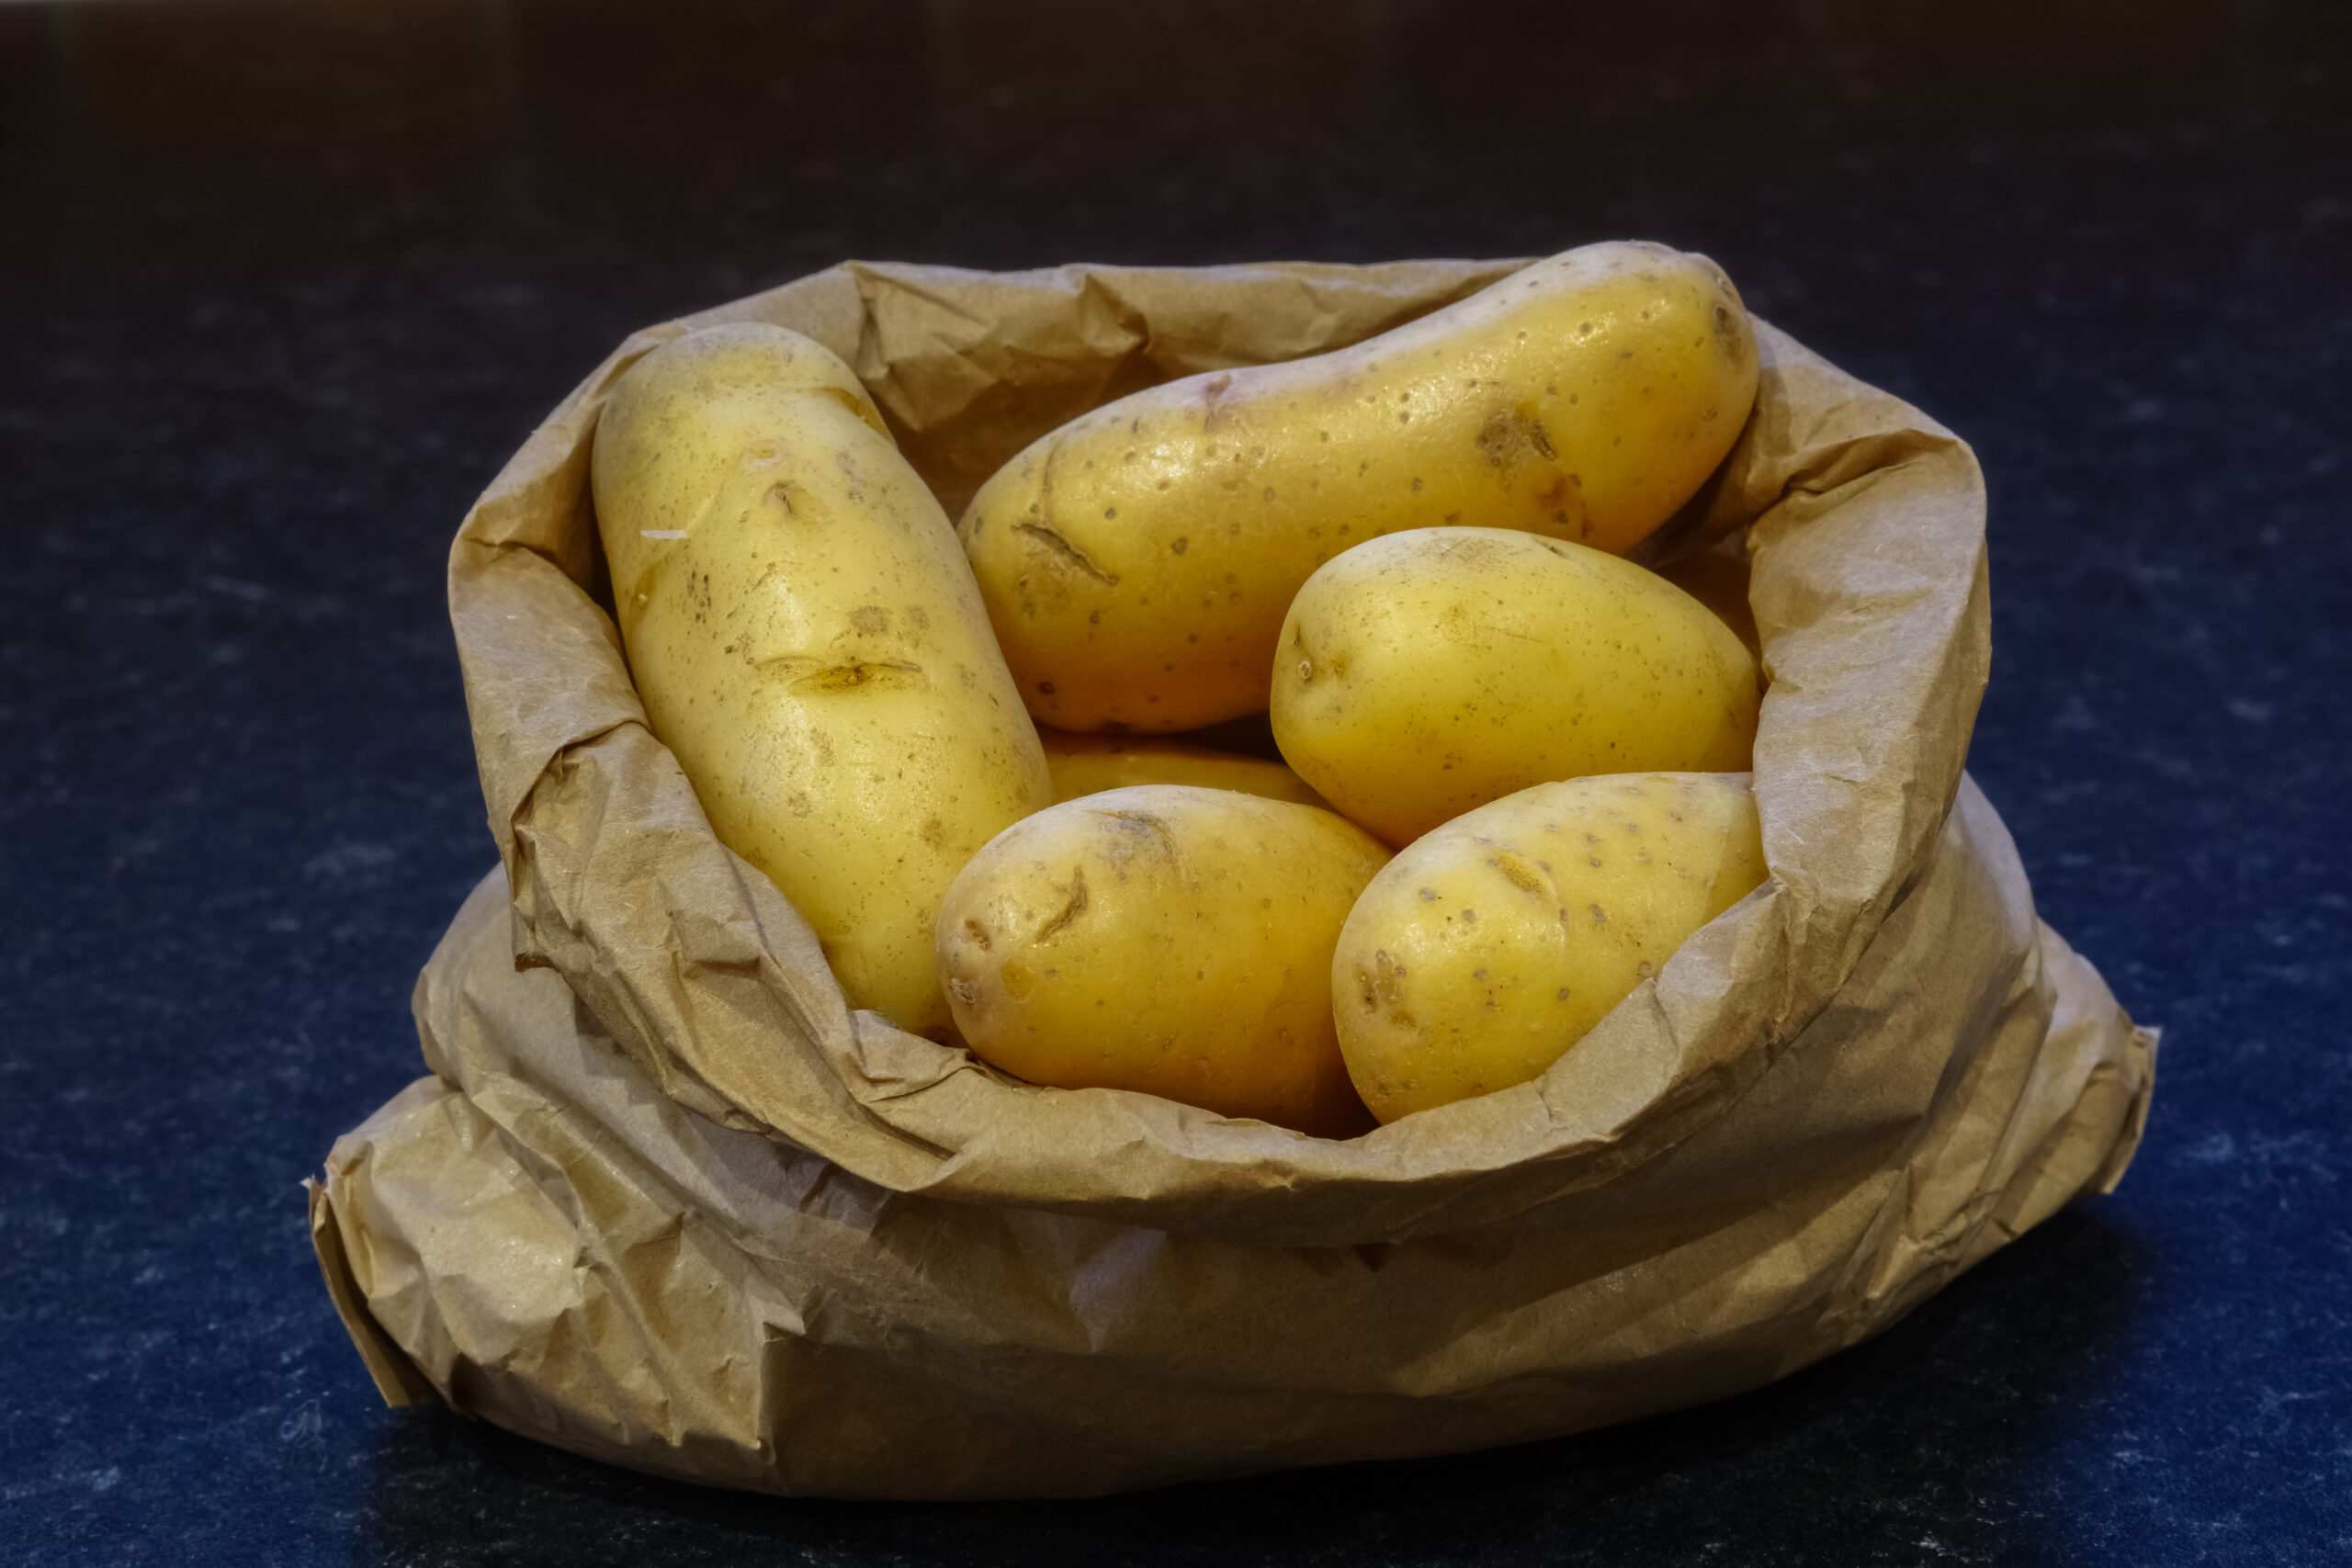 New potatoes in a bag